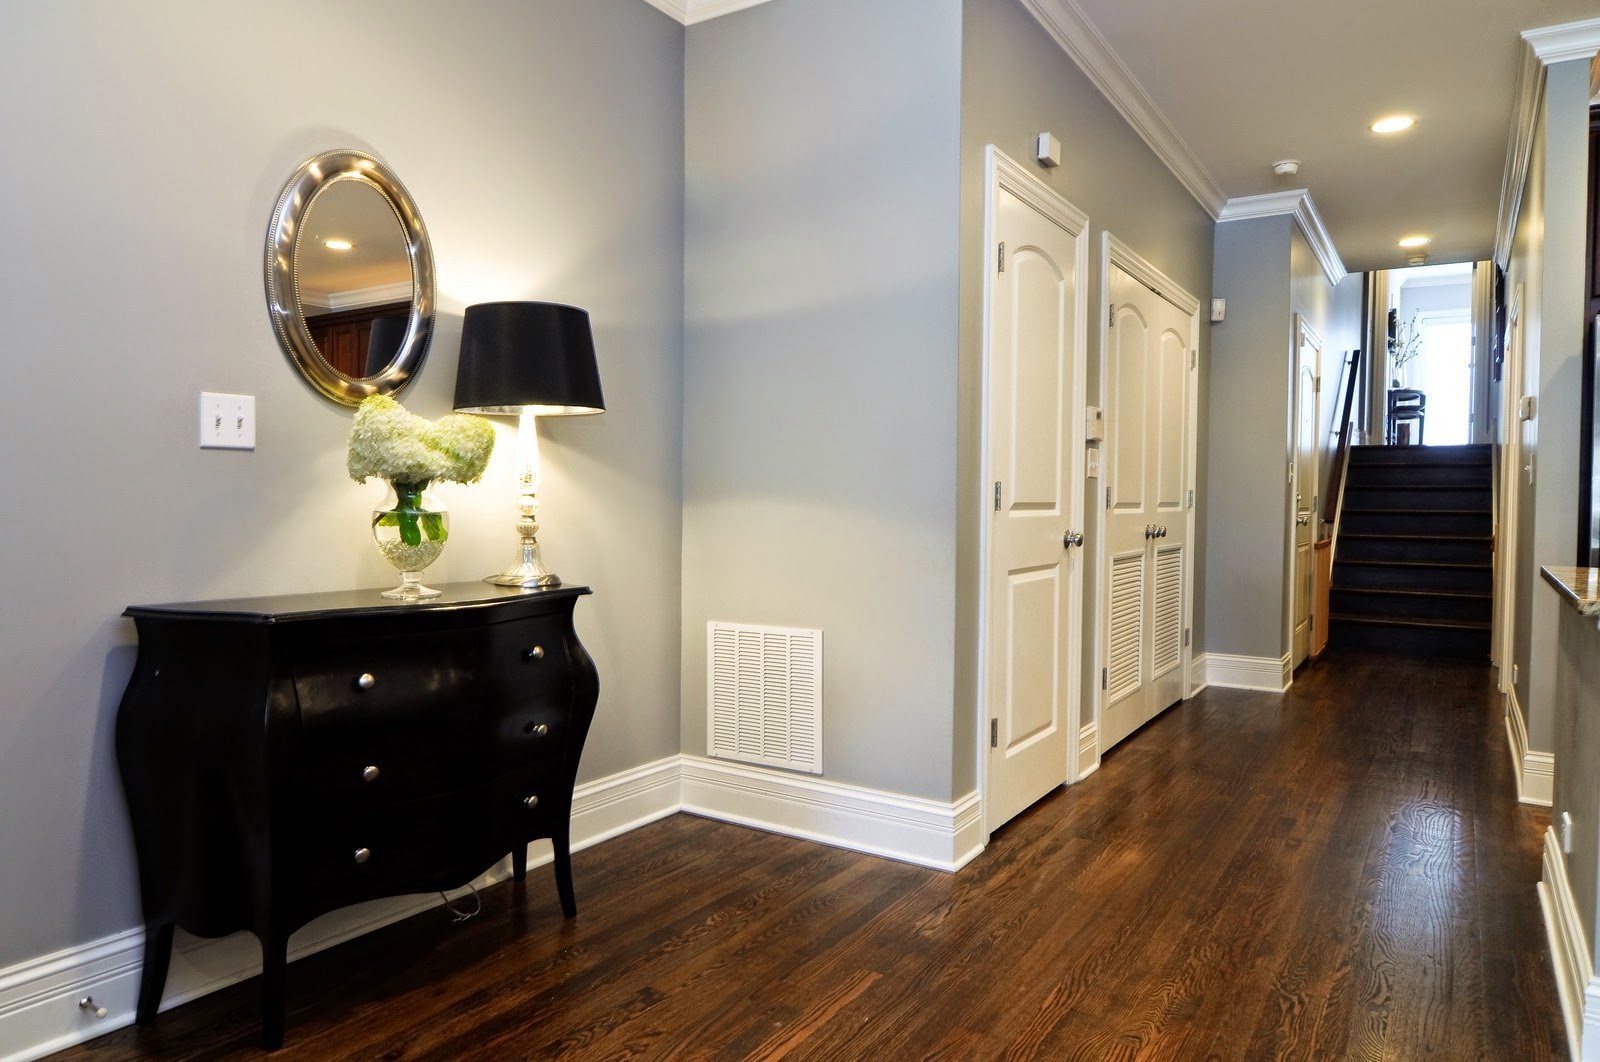 The best gray paint colors updated often home with keki Paint colors that go with grey flooring